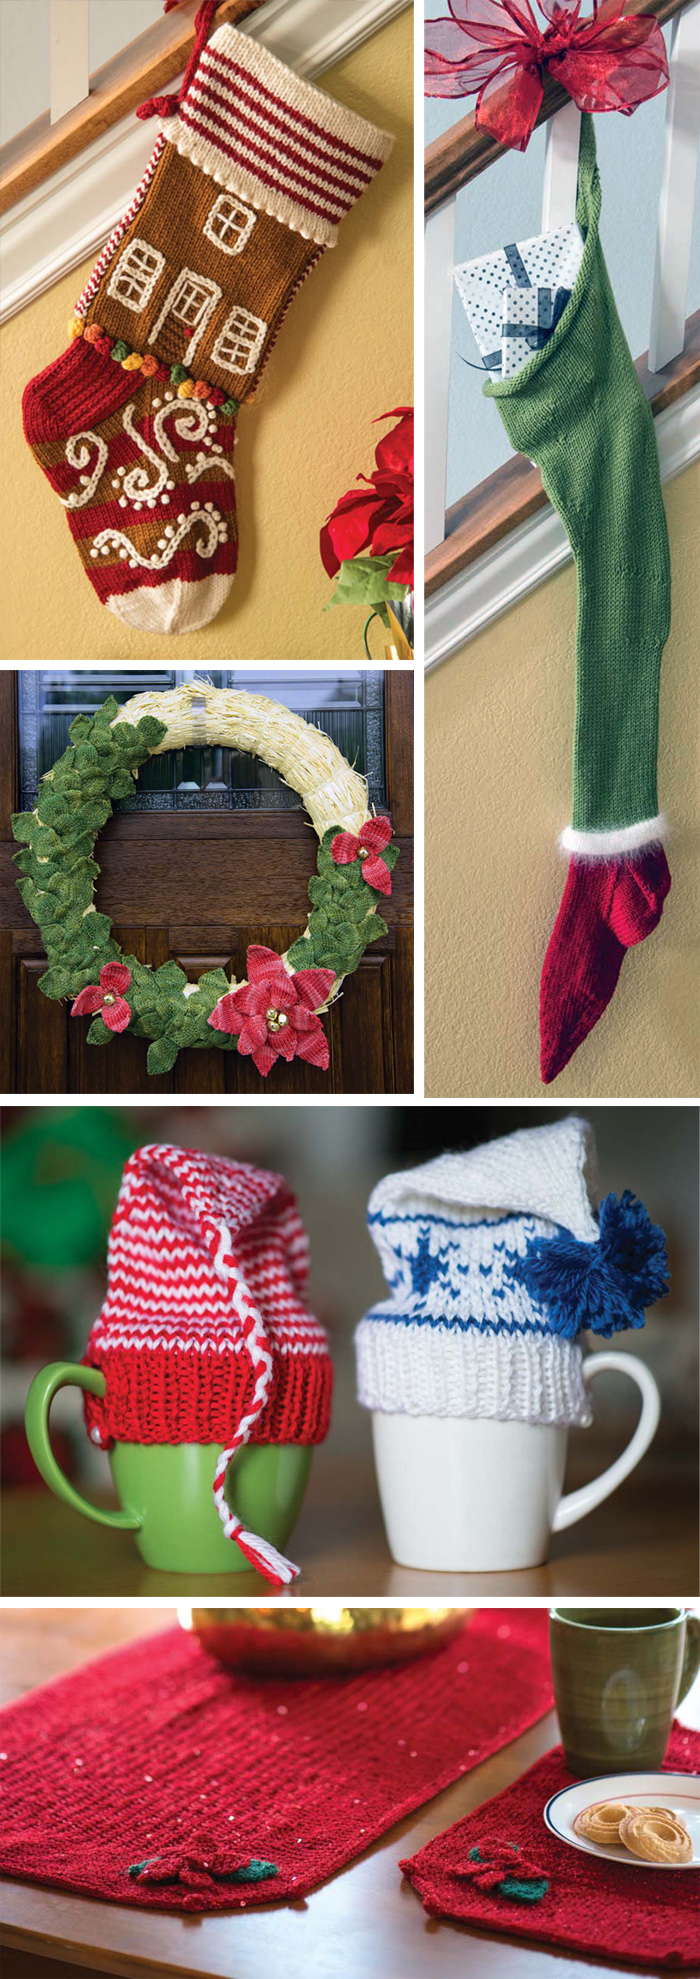 Christmas Knitting Patterns from Love of Knitting Holiday Knits